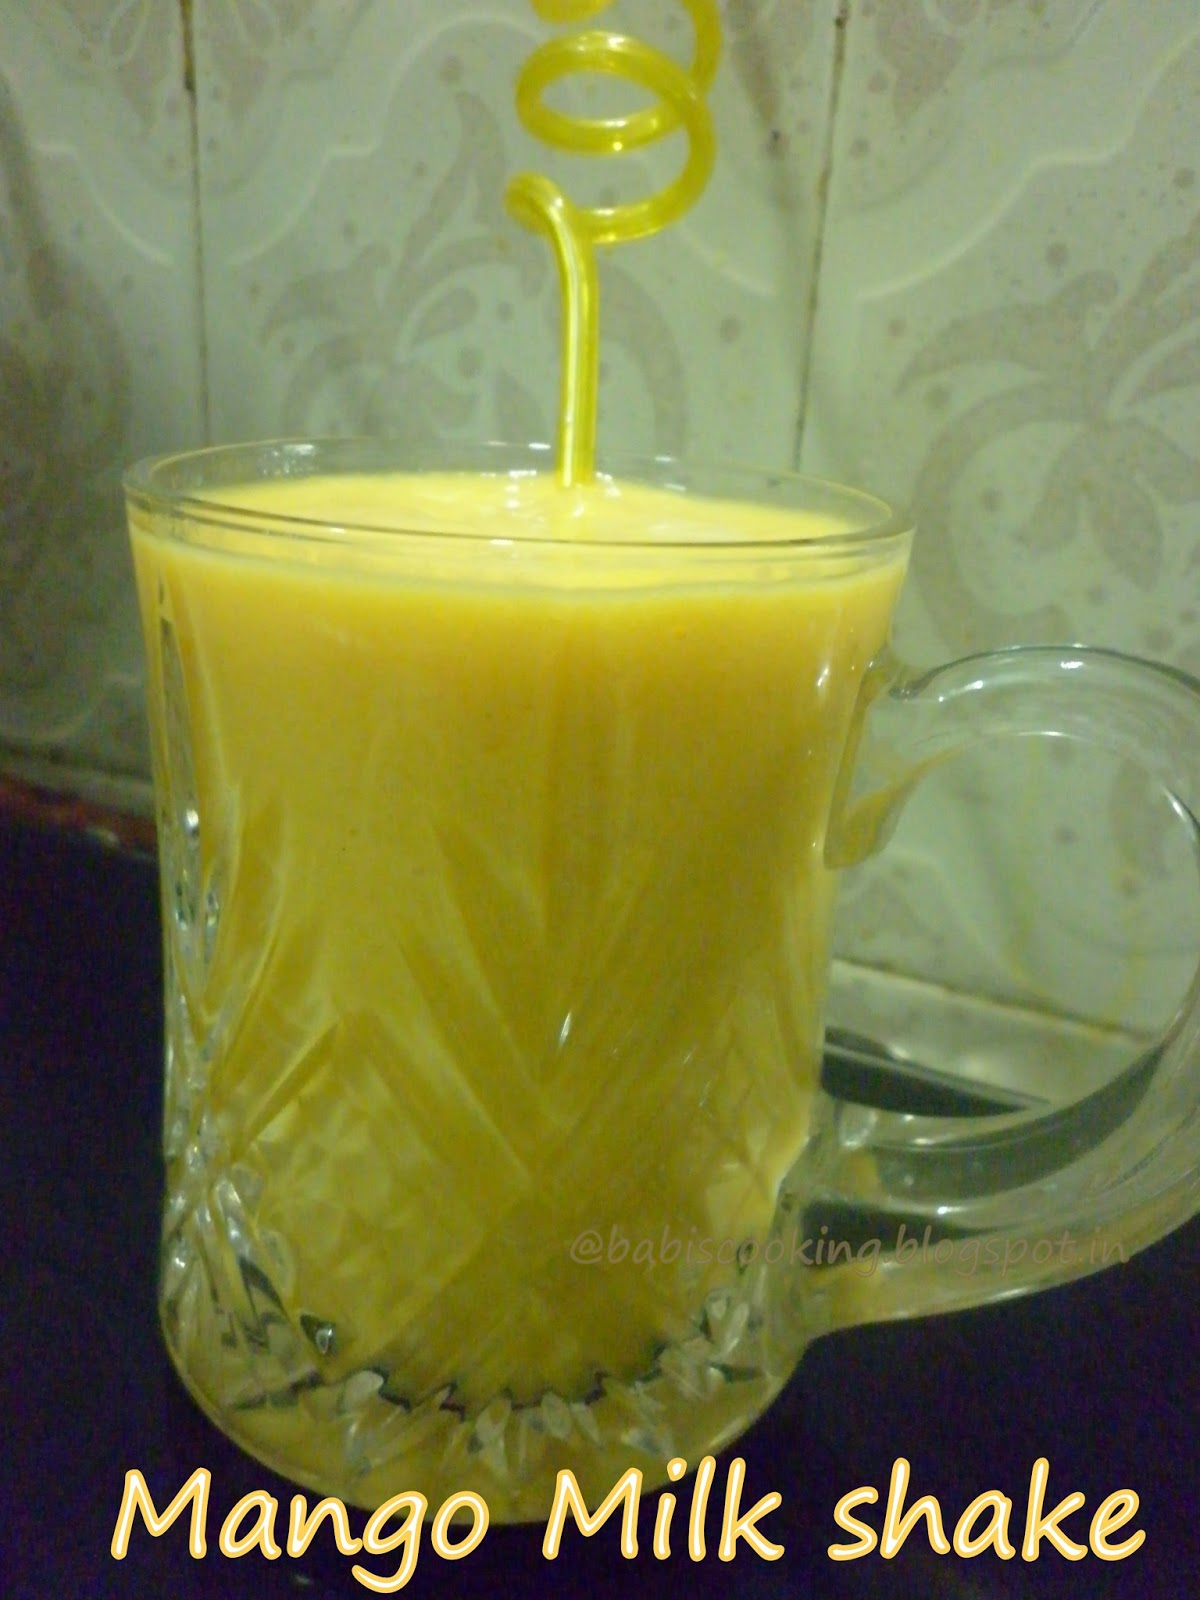 Babi 's Recipes: Mango milk shake | Mango Recipe